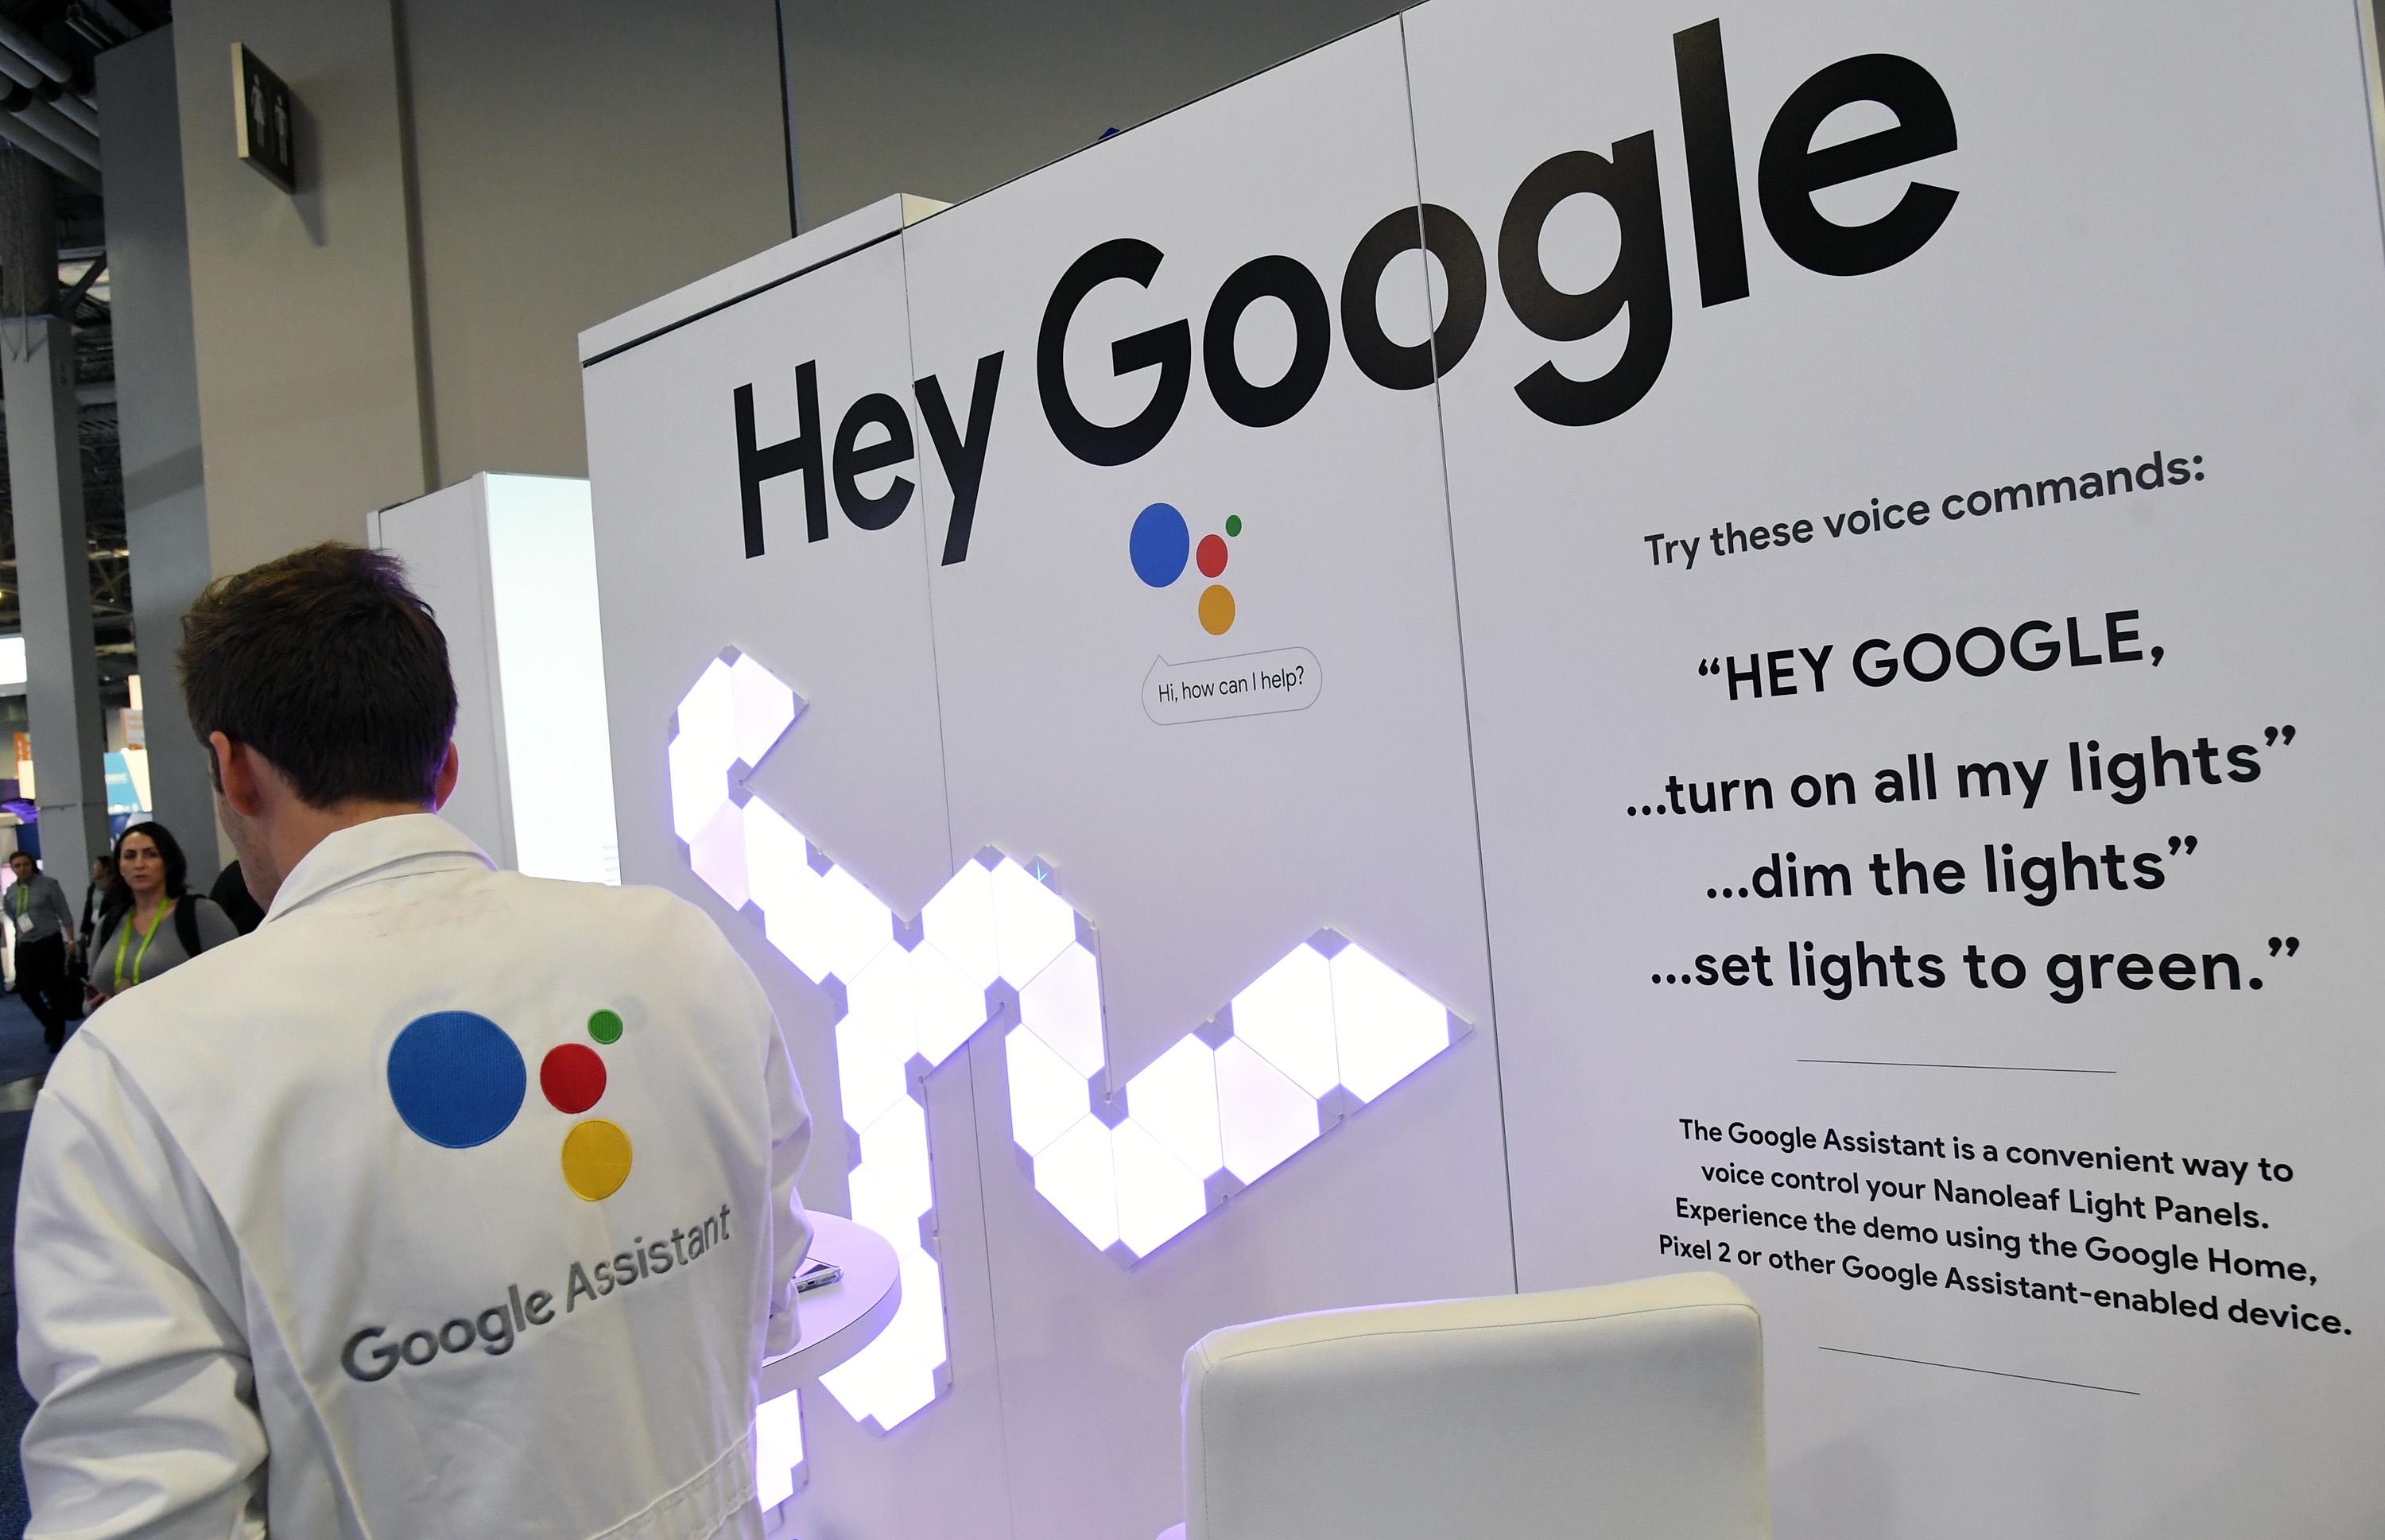 Signage for the Google Assistant is displayed during CES 2018 at the Sands Expo and Convention Center on January 9, 2018 in Las Vegas, Nevada. CES, the world's largest annual consumer technology trade show, runs through January 12 and features about 3,900